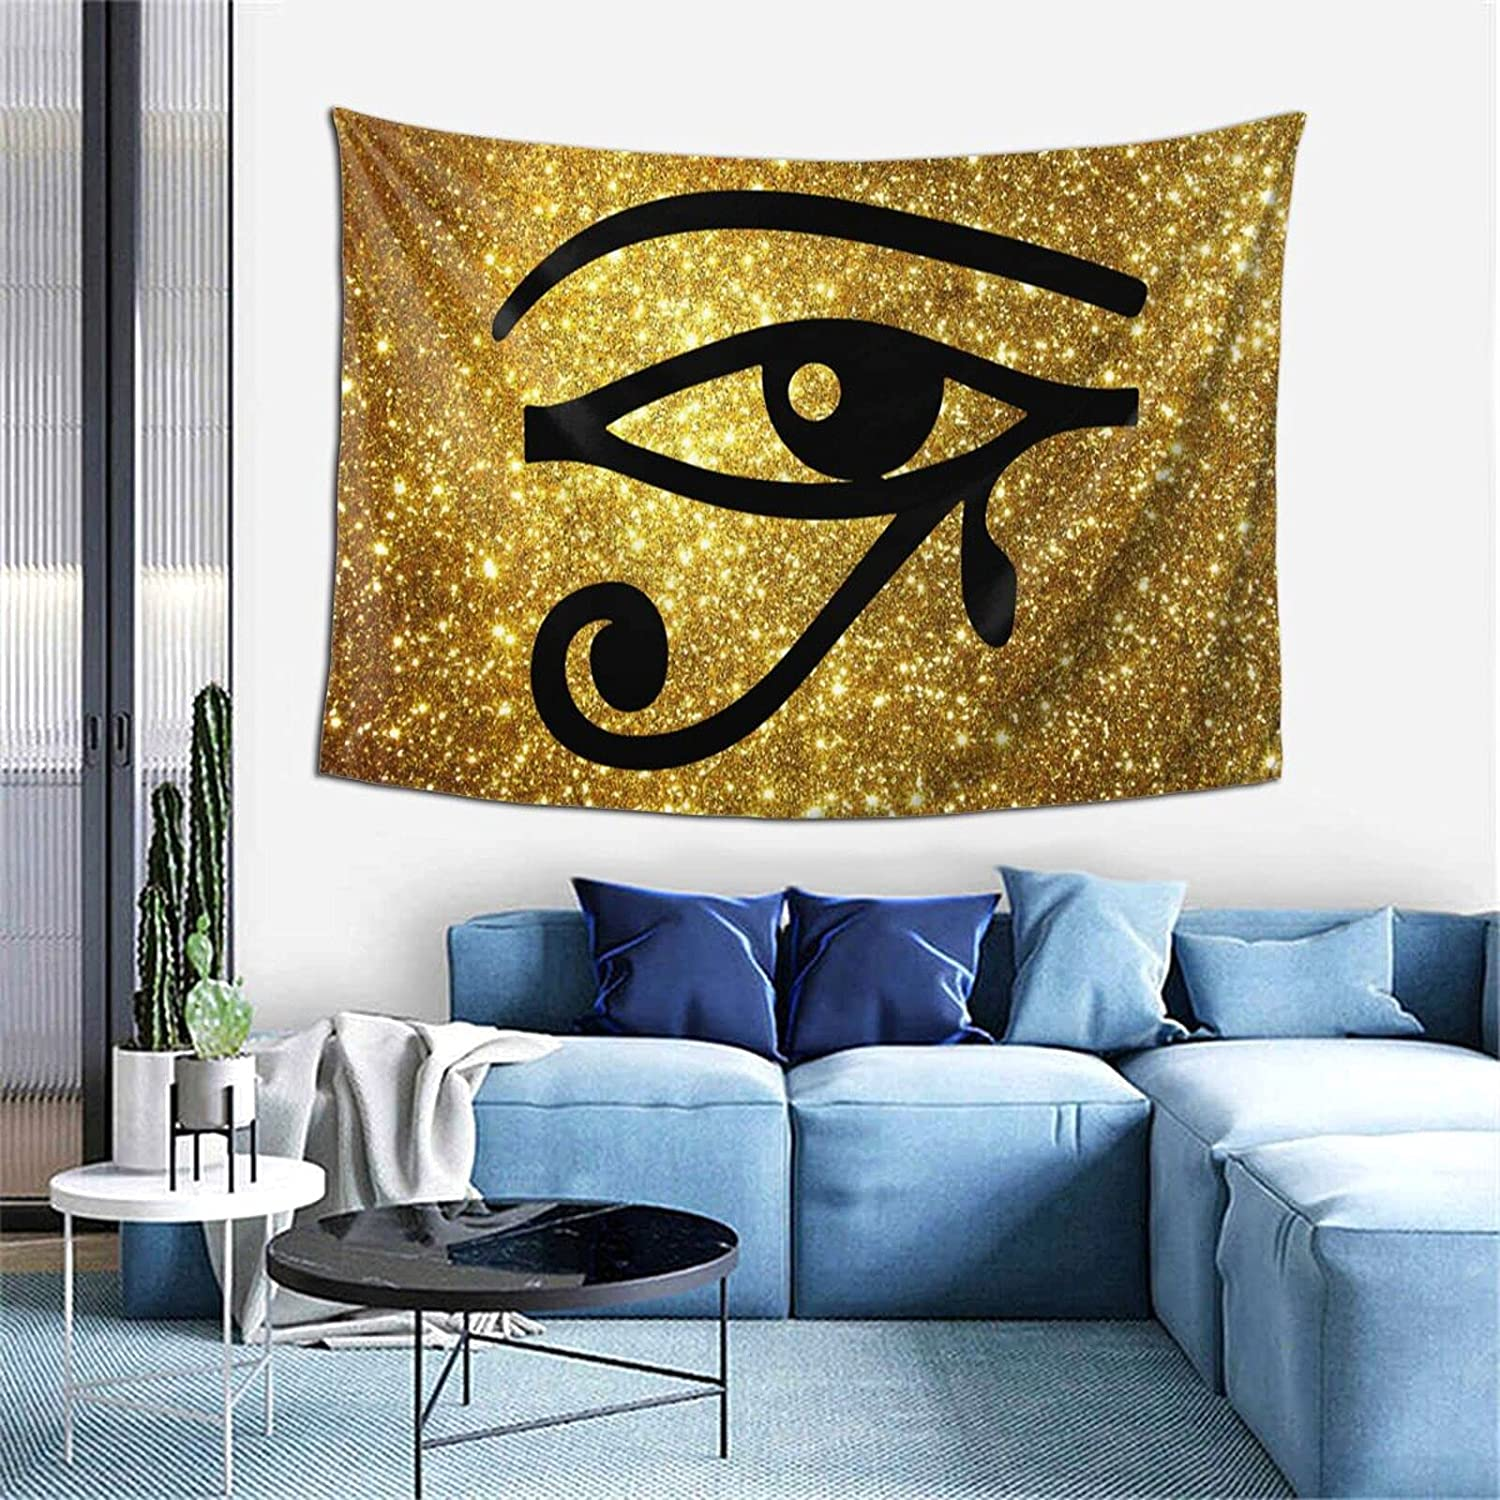 The Eye Of Ra Poster Tapestry Dorm Room Decor Wall Hanging For Room Bedroom Living Room Home Decors (60